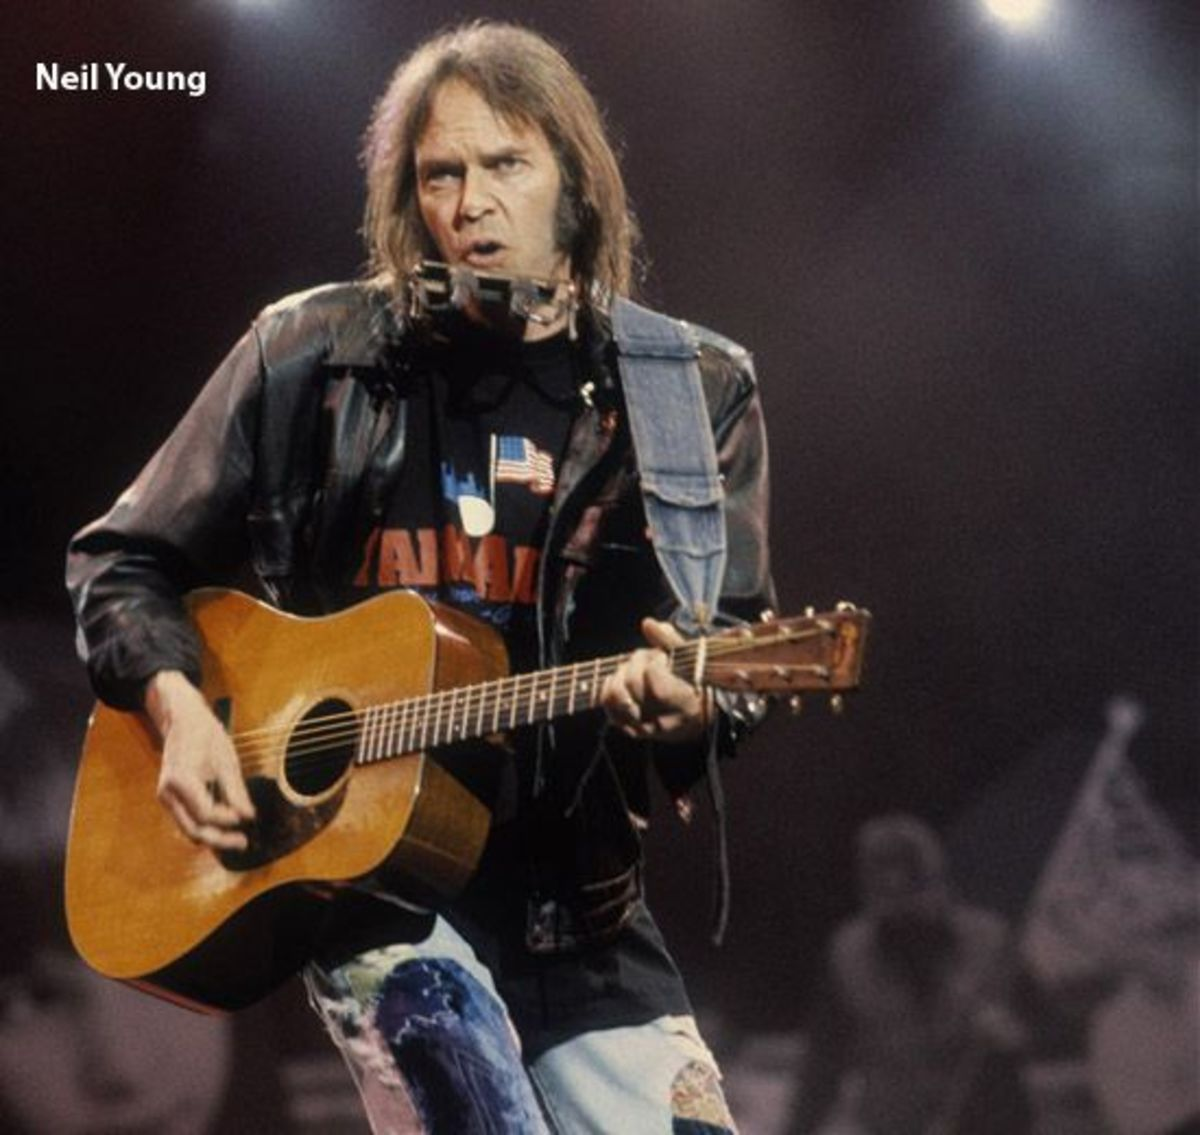 Neil Young at Farm Aid Concert